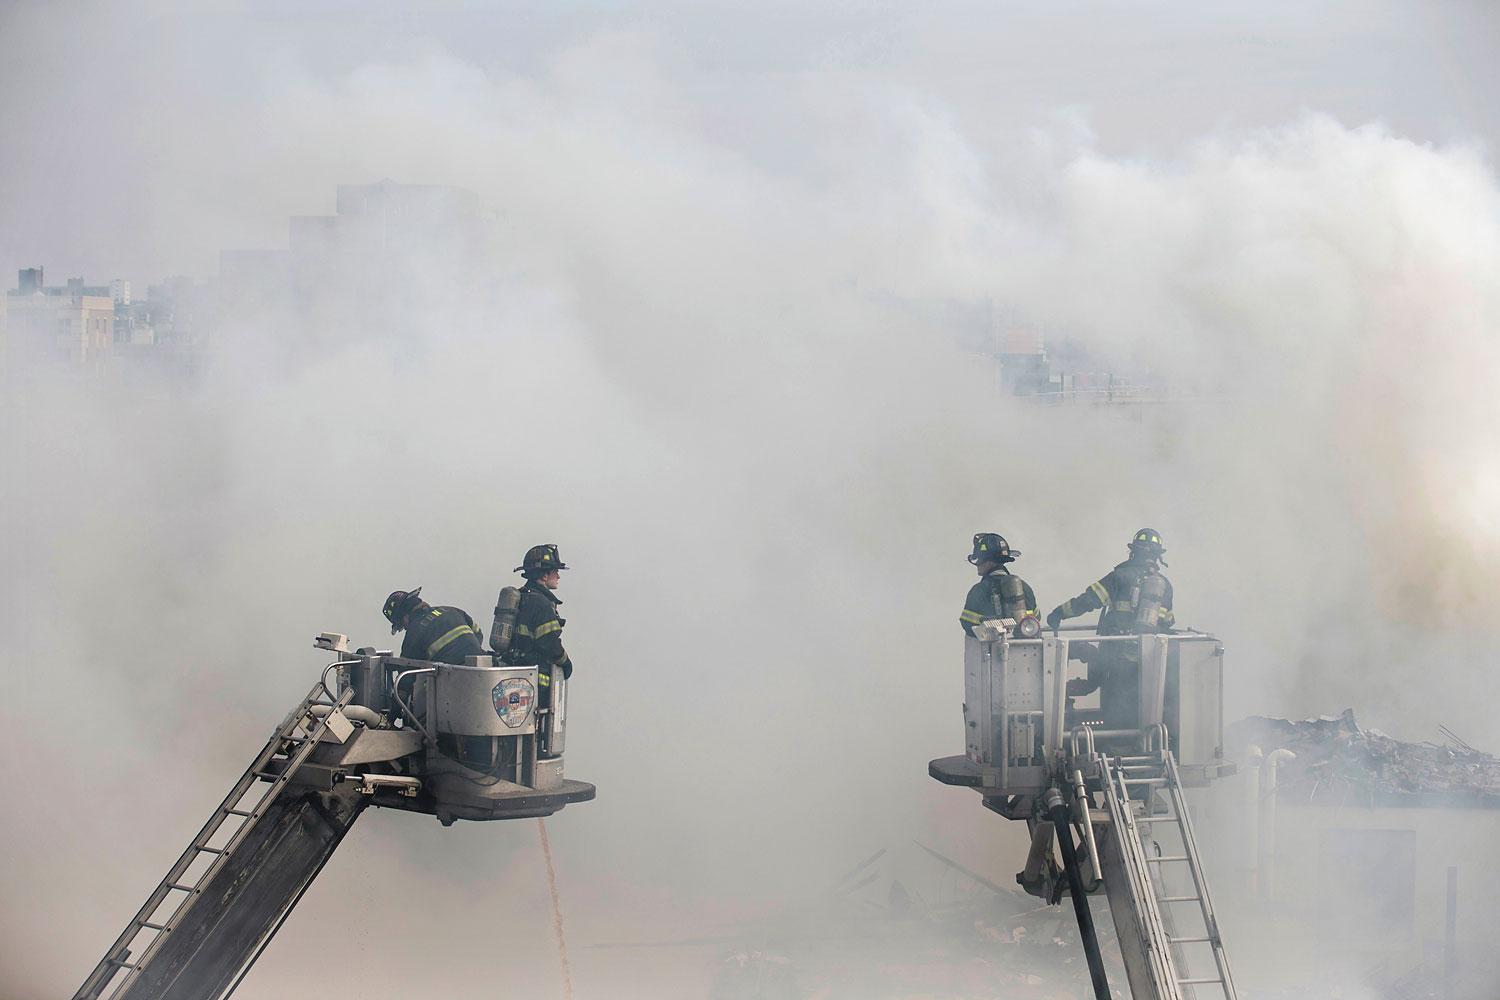 Firefighters respond to an explosion that leveled two apartment buildings in the East Harlem neighborhood of New York, March 12, 2014.